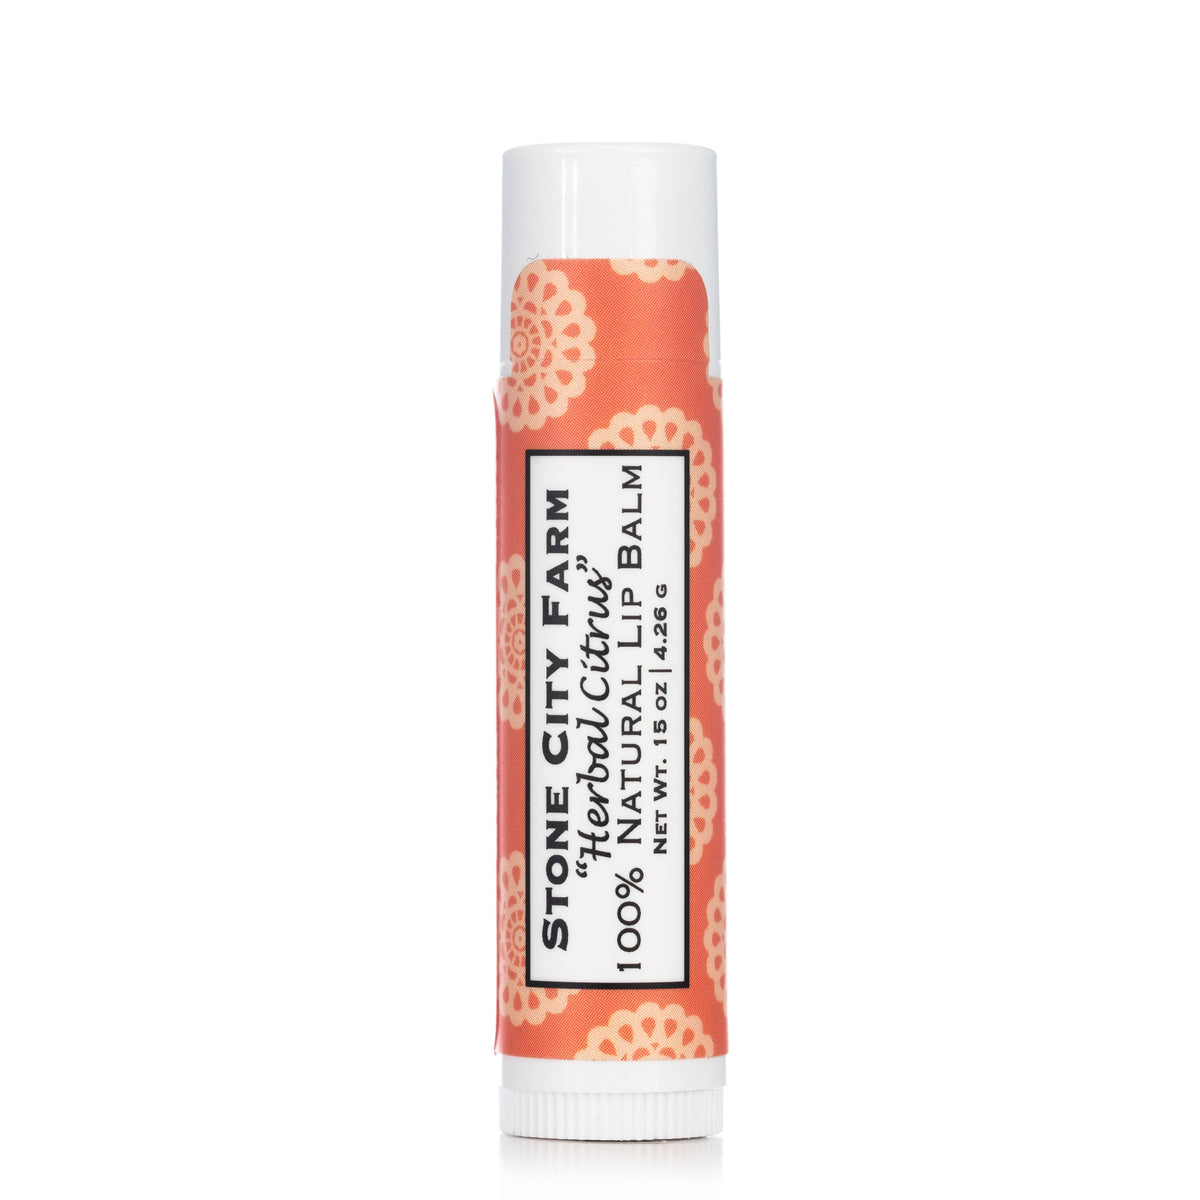 Herbal Citrus Lip Balm